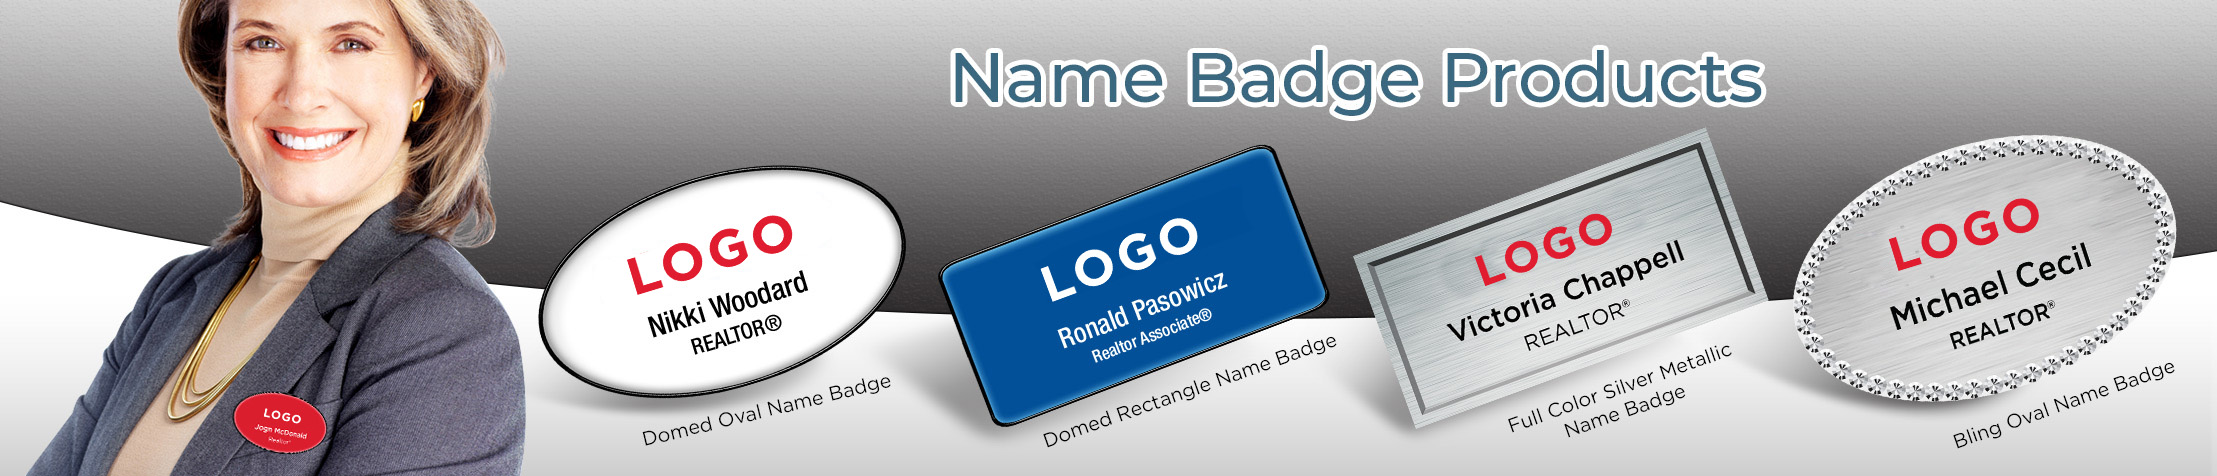 RE/MAX Real Estate Name Badge Products - RE/MAX Name Tags for Realtors | BestPrintBuy.com